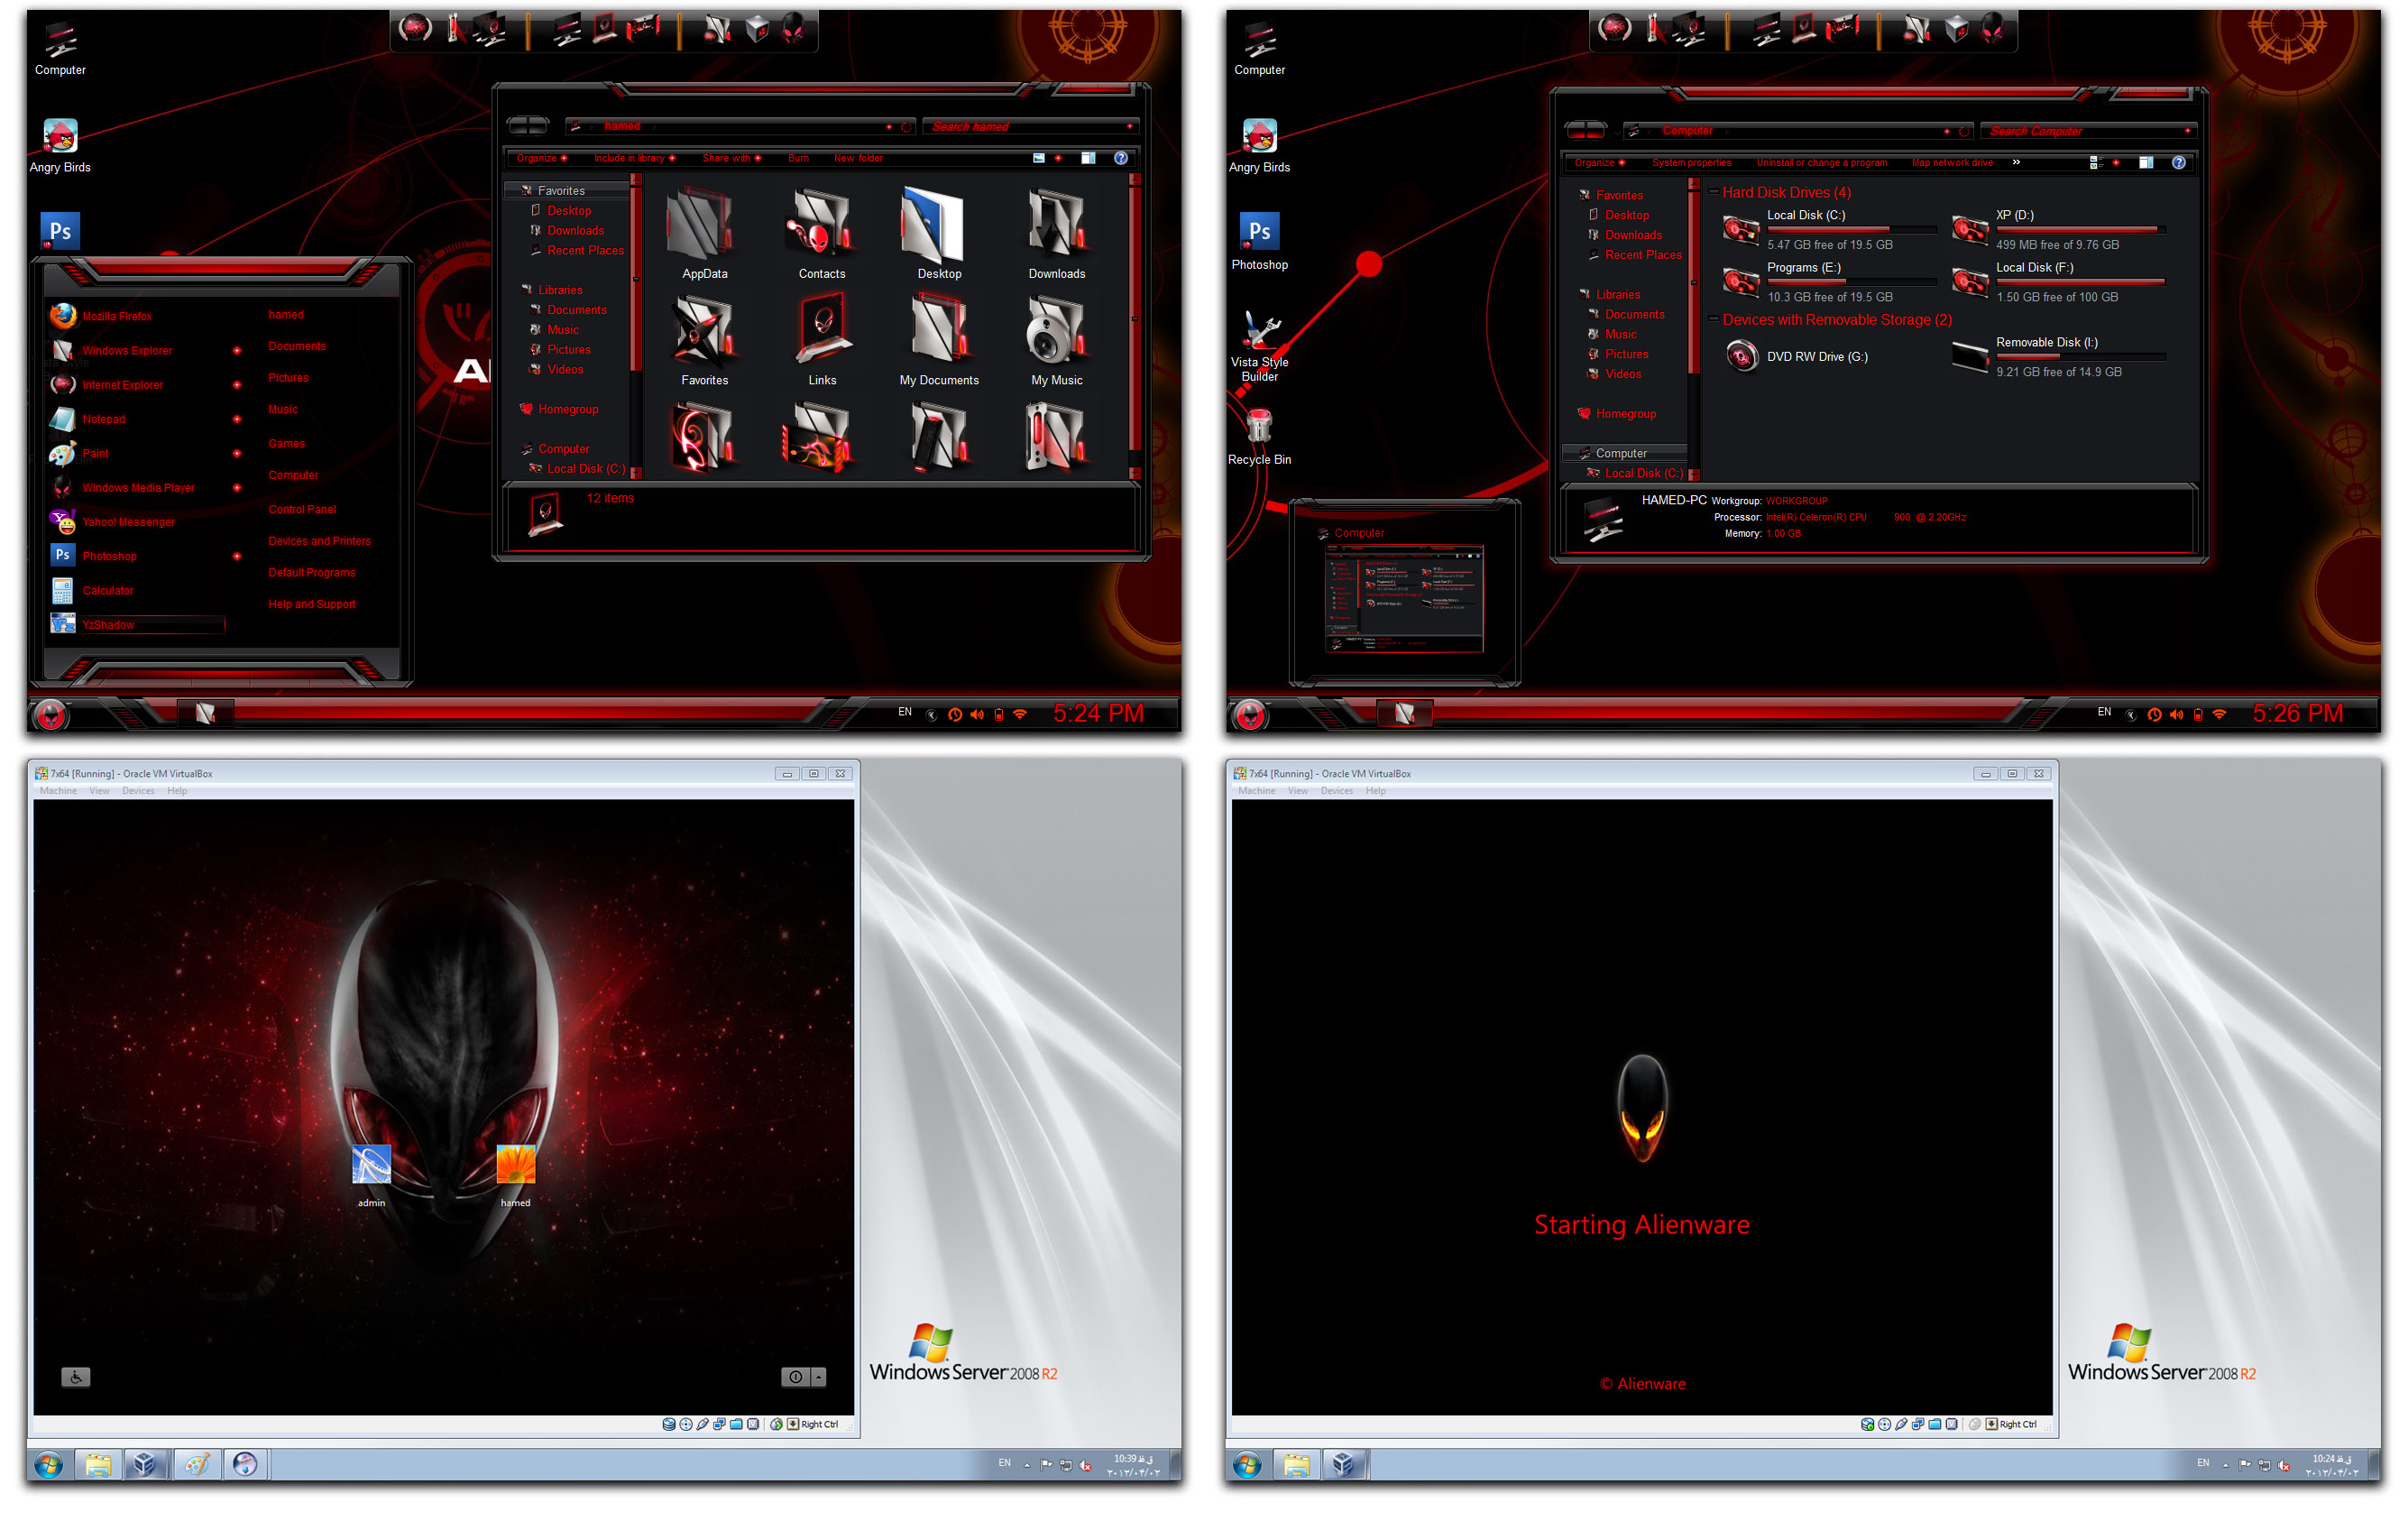 Free windows 7 themes alienware for Window 07 themes